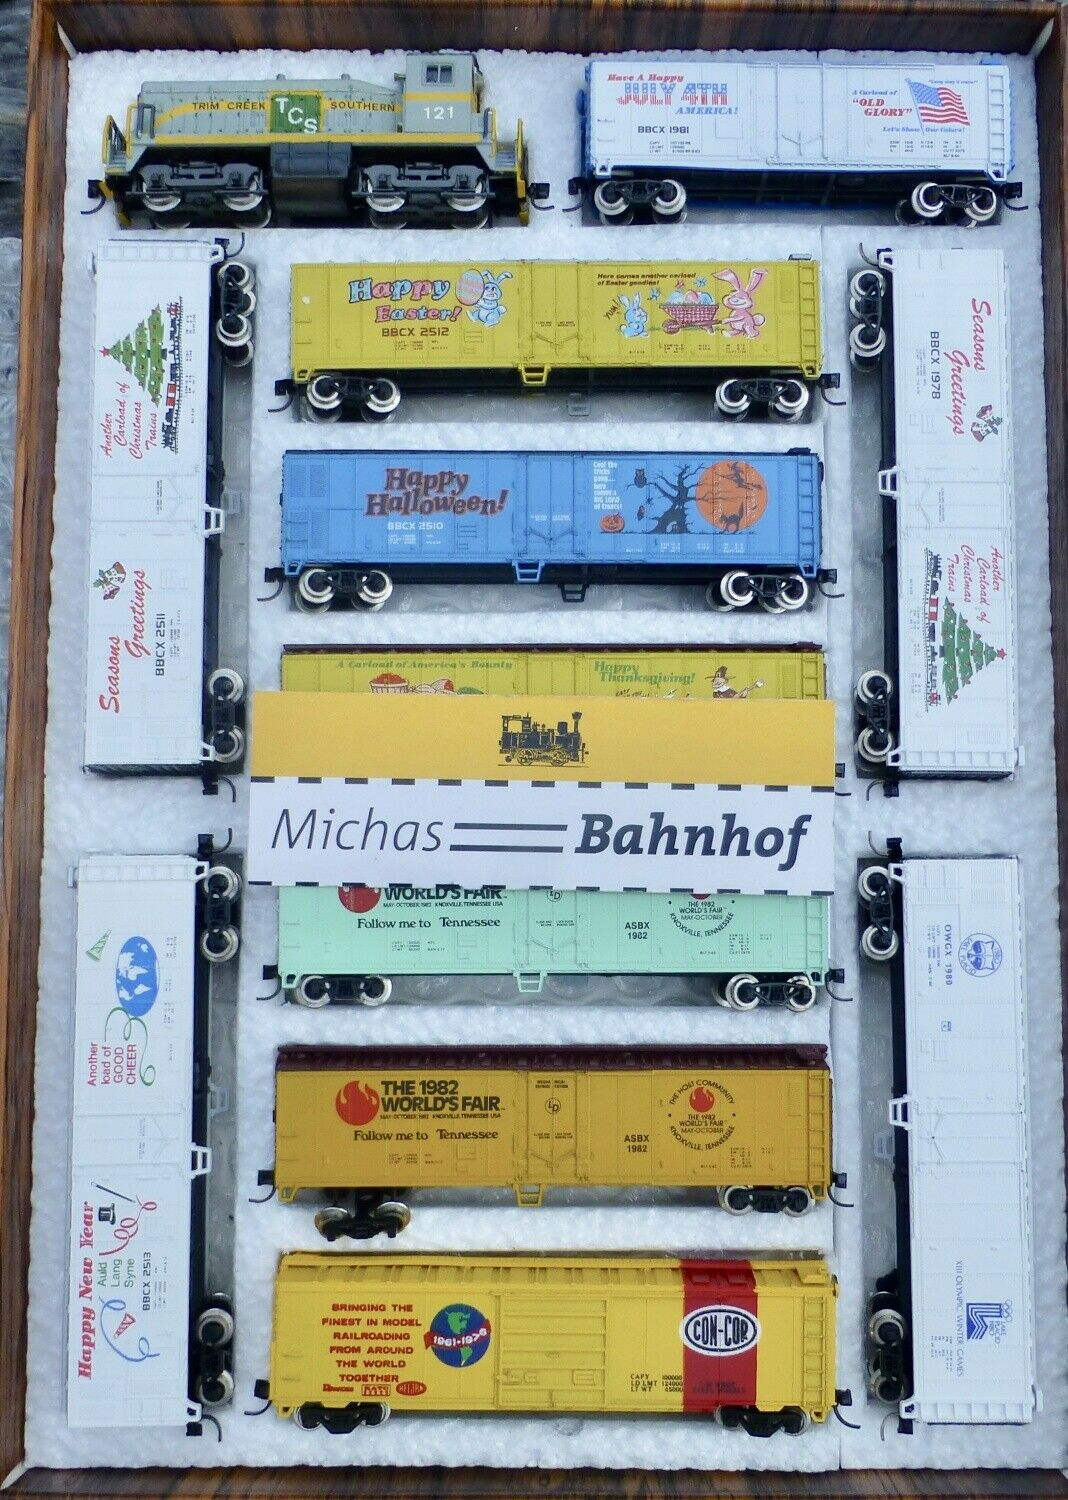 Color x Freight SW 1200 Trim creeks + 11 40' 50' Coches Rivarossi atlas zugset n 1